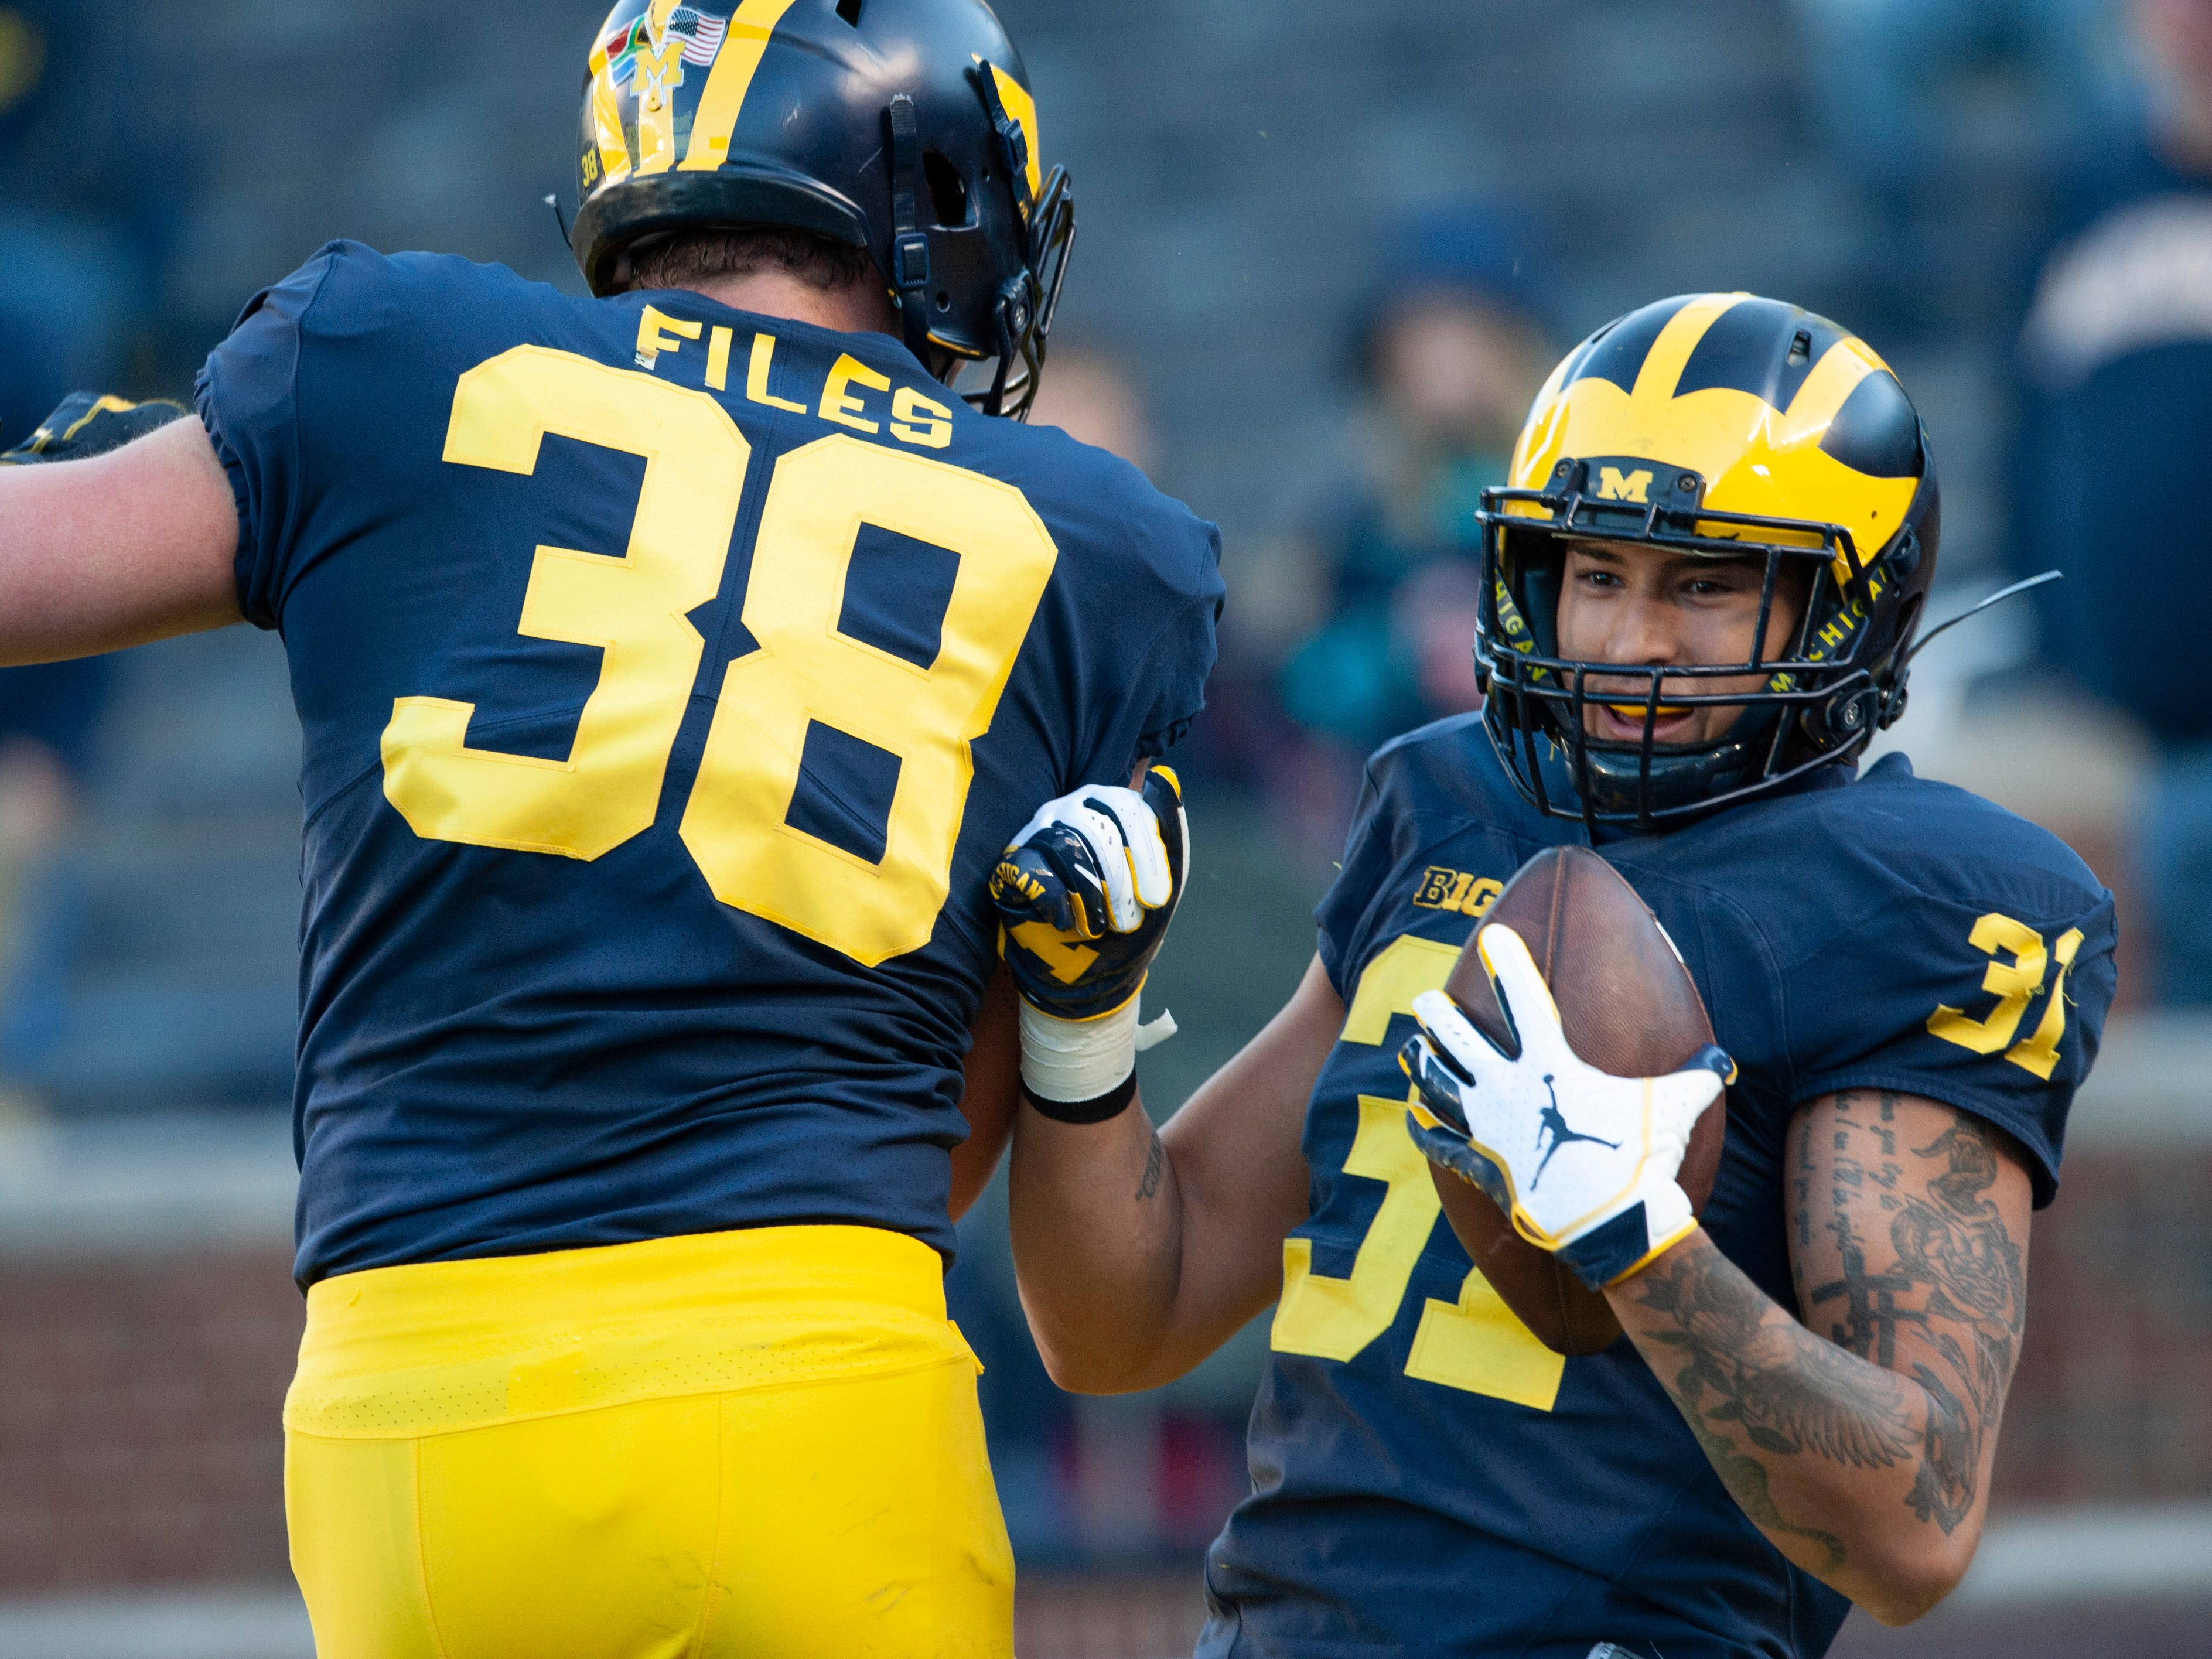 Michigan WR Jack Young (31) celebrates his touchdown reception with teammate Joseph Files.